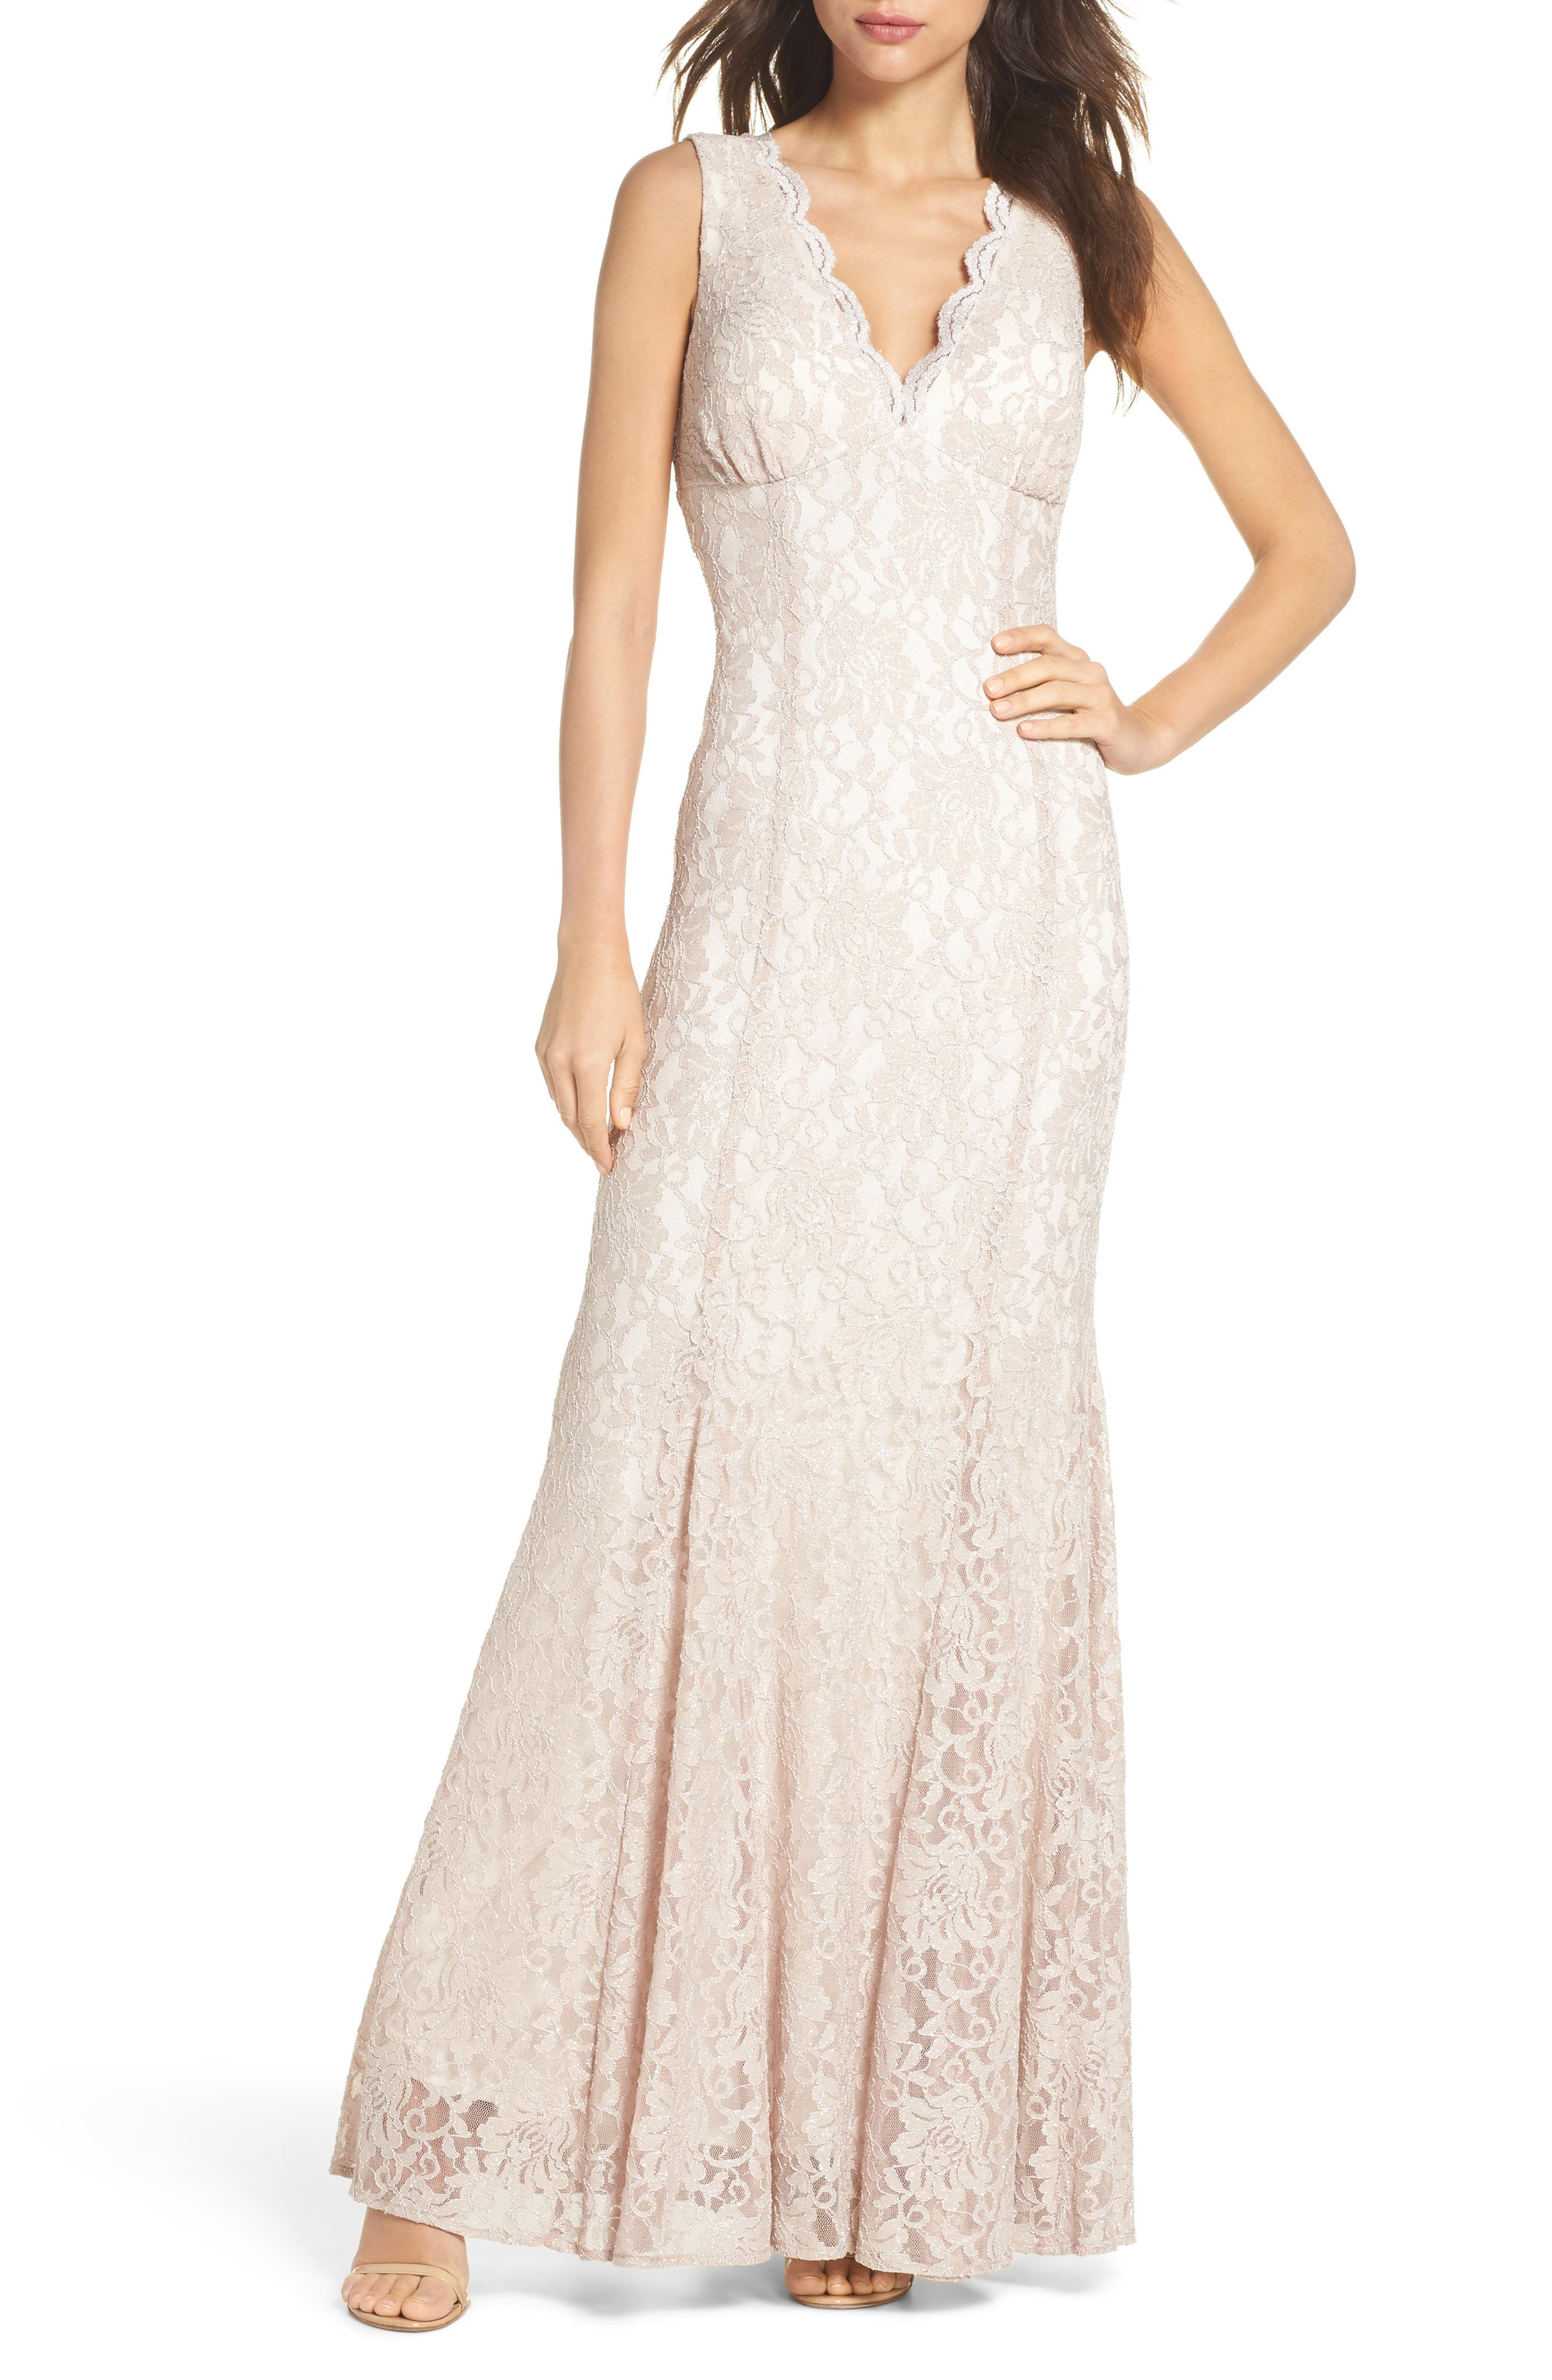 Glitter Lace Trumpet Dress,                         Main,                         color, Champagne / Ivory